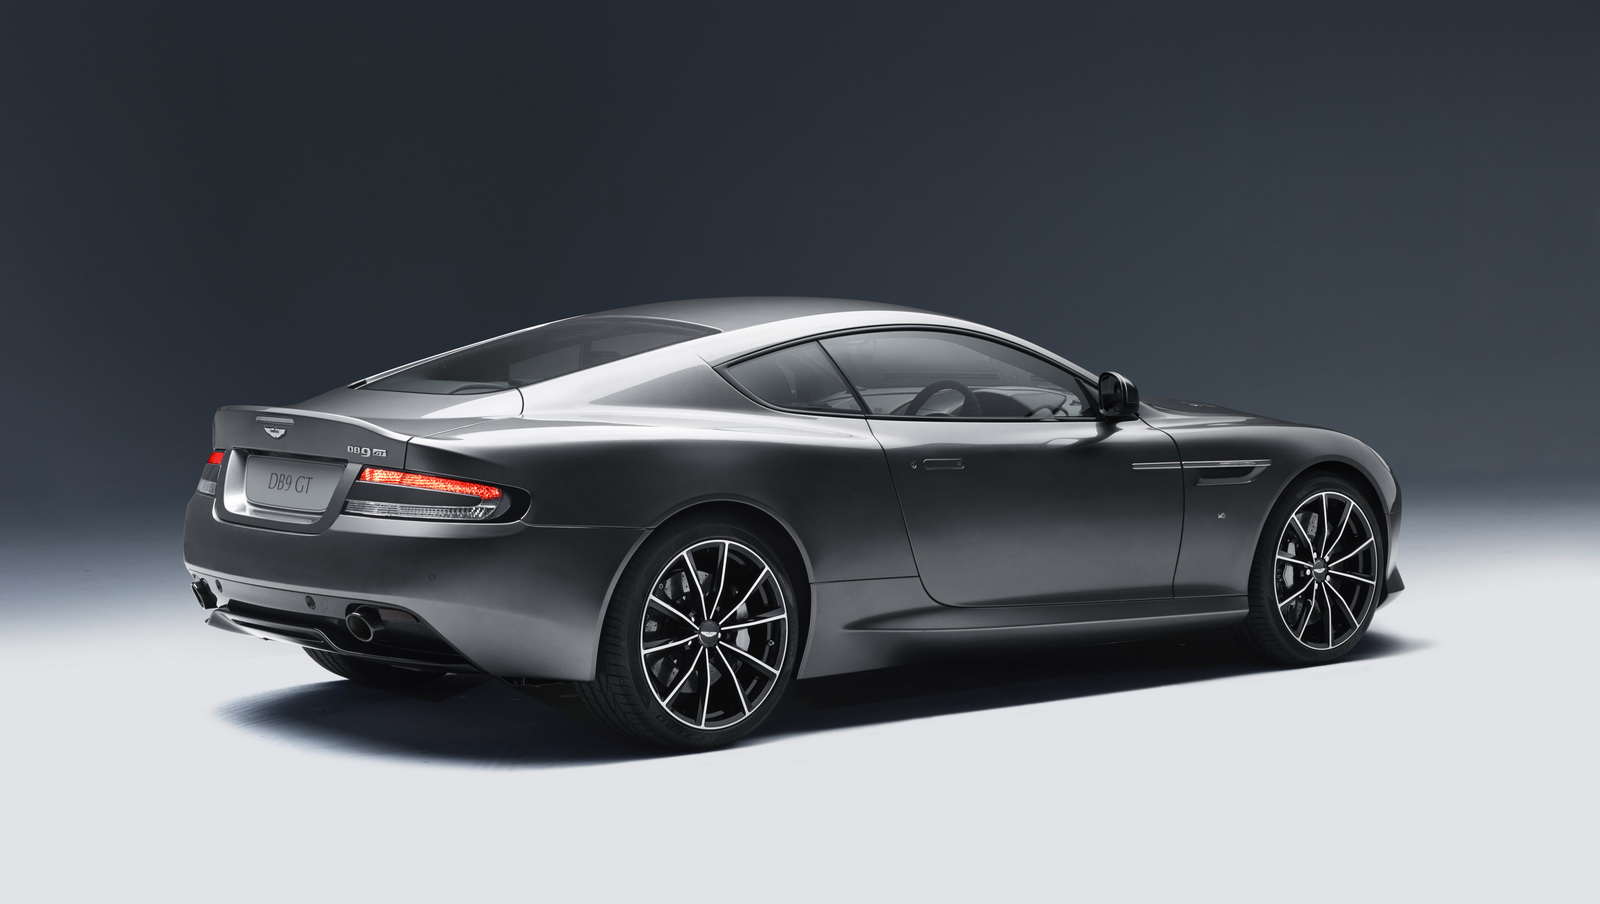 Aston Martin Db9 Wallpapers Vehicles Hq Aston Martin Db9 Pictures 4k Wallpapers 2019